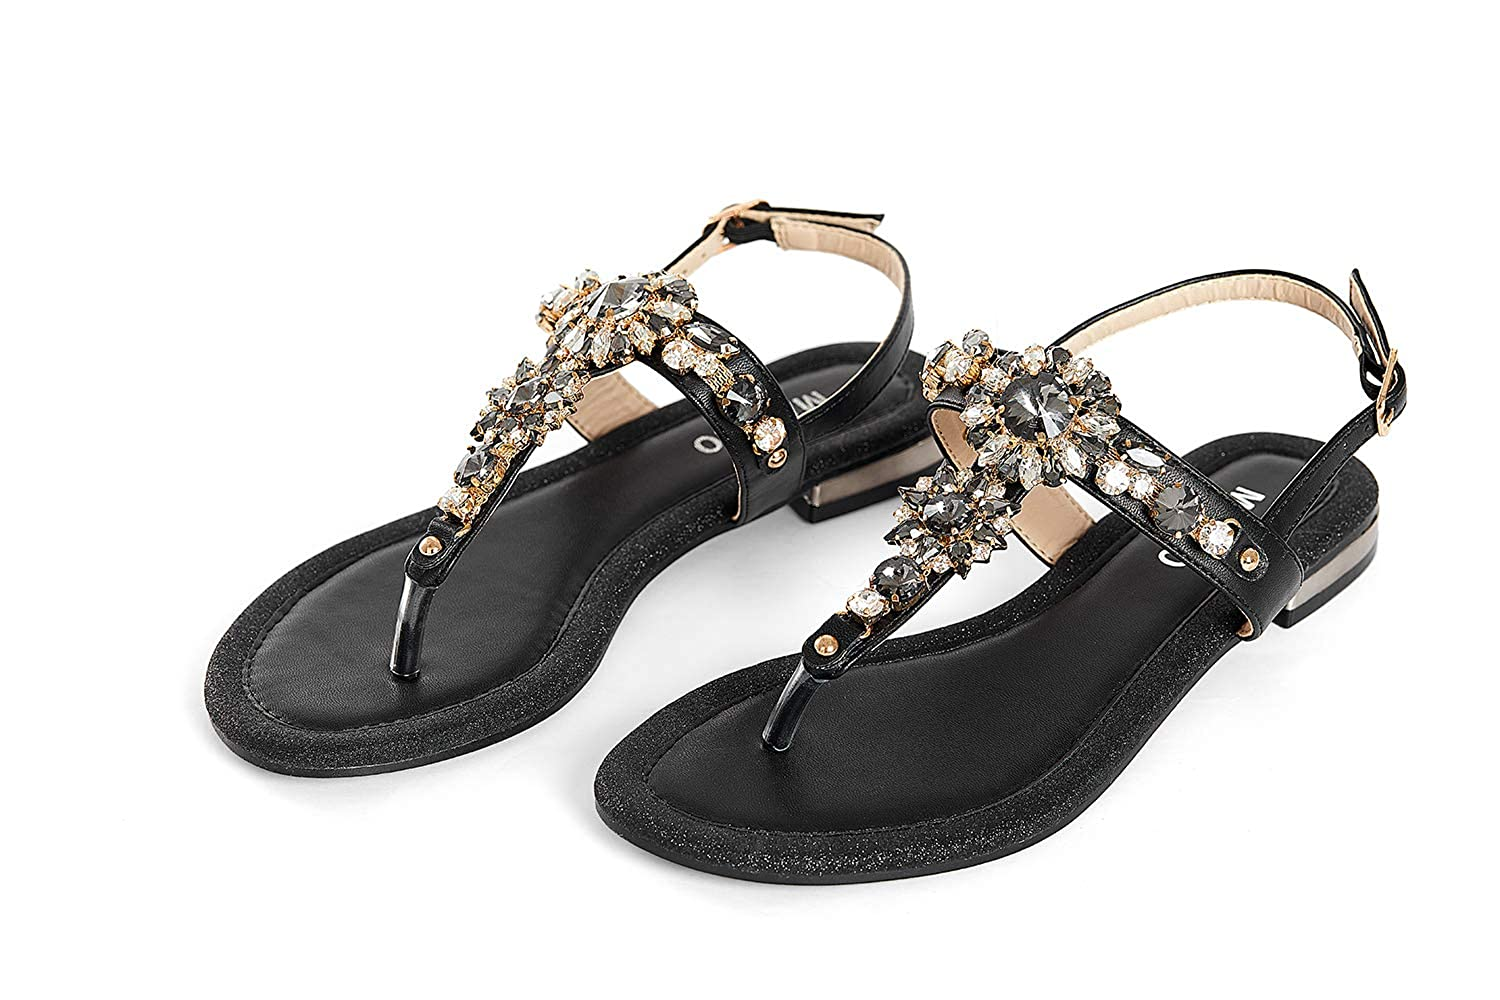 684a166f5a4e MARINO Womens Ladies Flat Diamante Sandals Summer Embellished Comfy Beach Flip  Flops Sandal Toe Post Shoes (Black   Silver)  Amazon.co.uk  Shoes   Bags